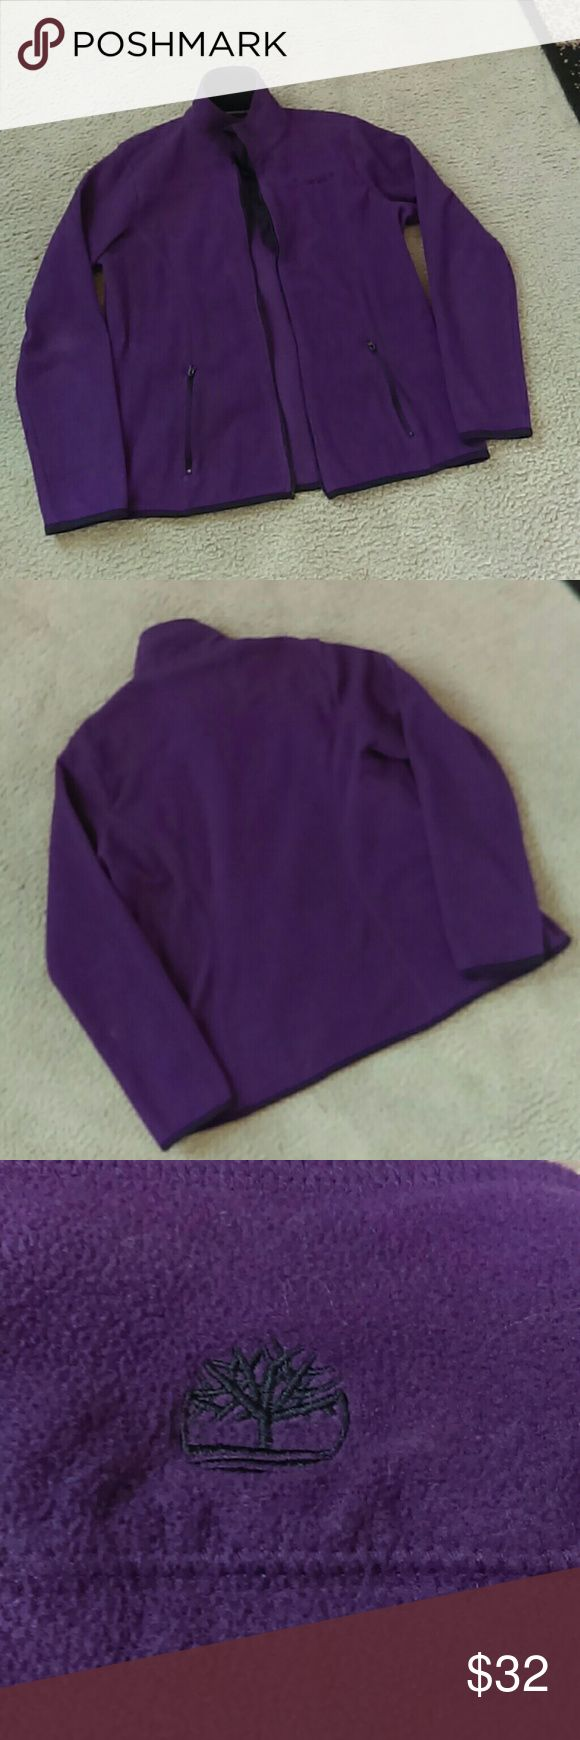 Timberland Jacket Gently used purple Timberland jacket. Jacket has no zipper. Two front zip pockets.  Fabric: 100 Polyester Timberland Jackets & Coats